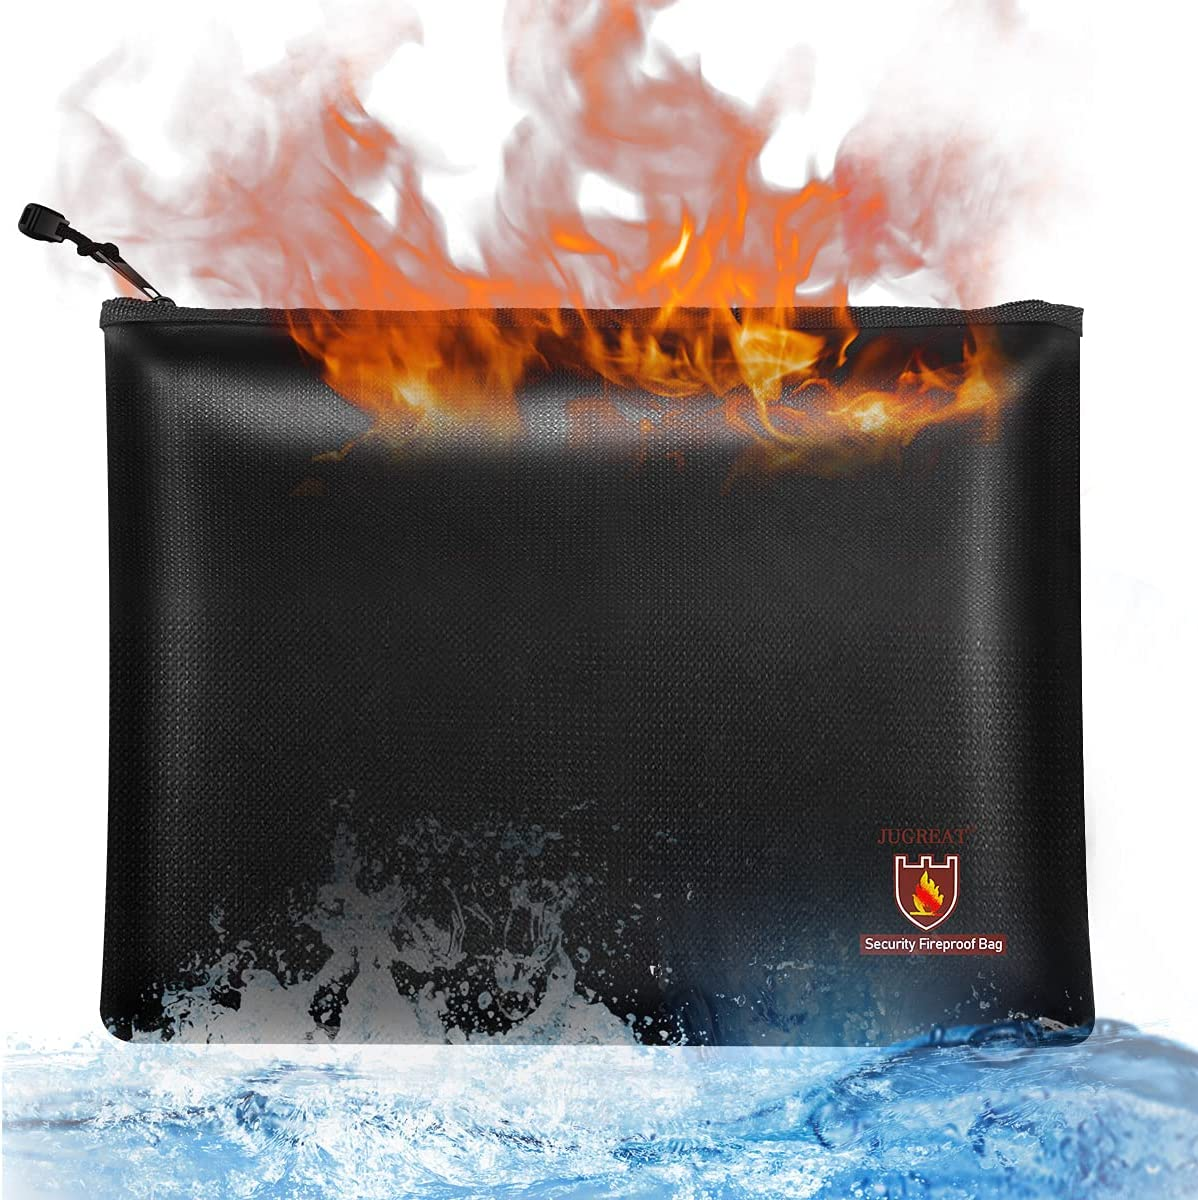 JUGREAT Fireproof Document Bag Large-scale sale 2000℉ Lowest price challenge Fir 10.5